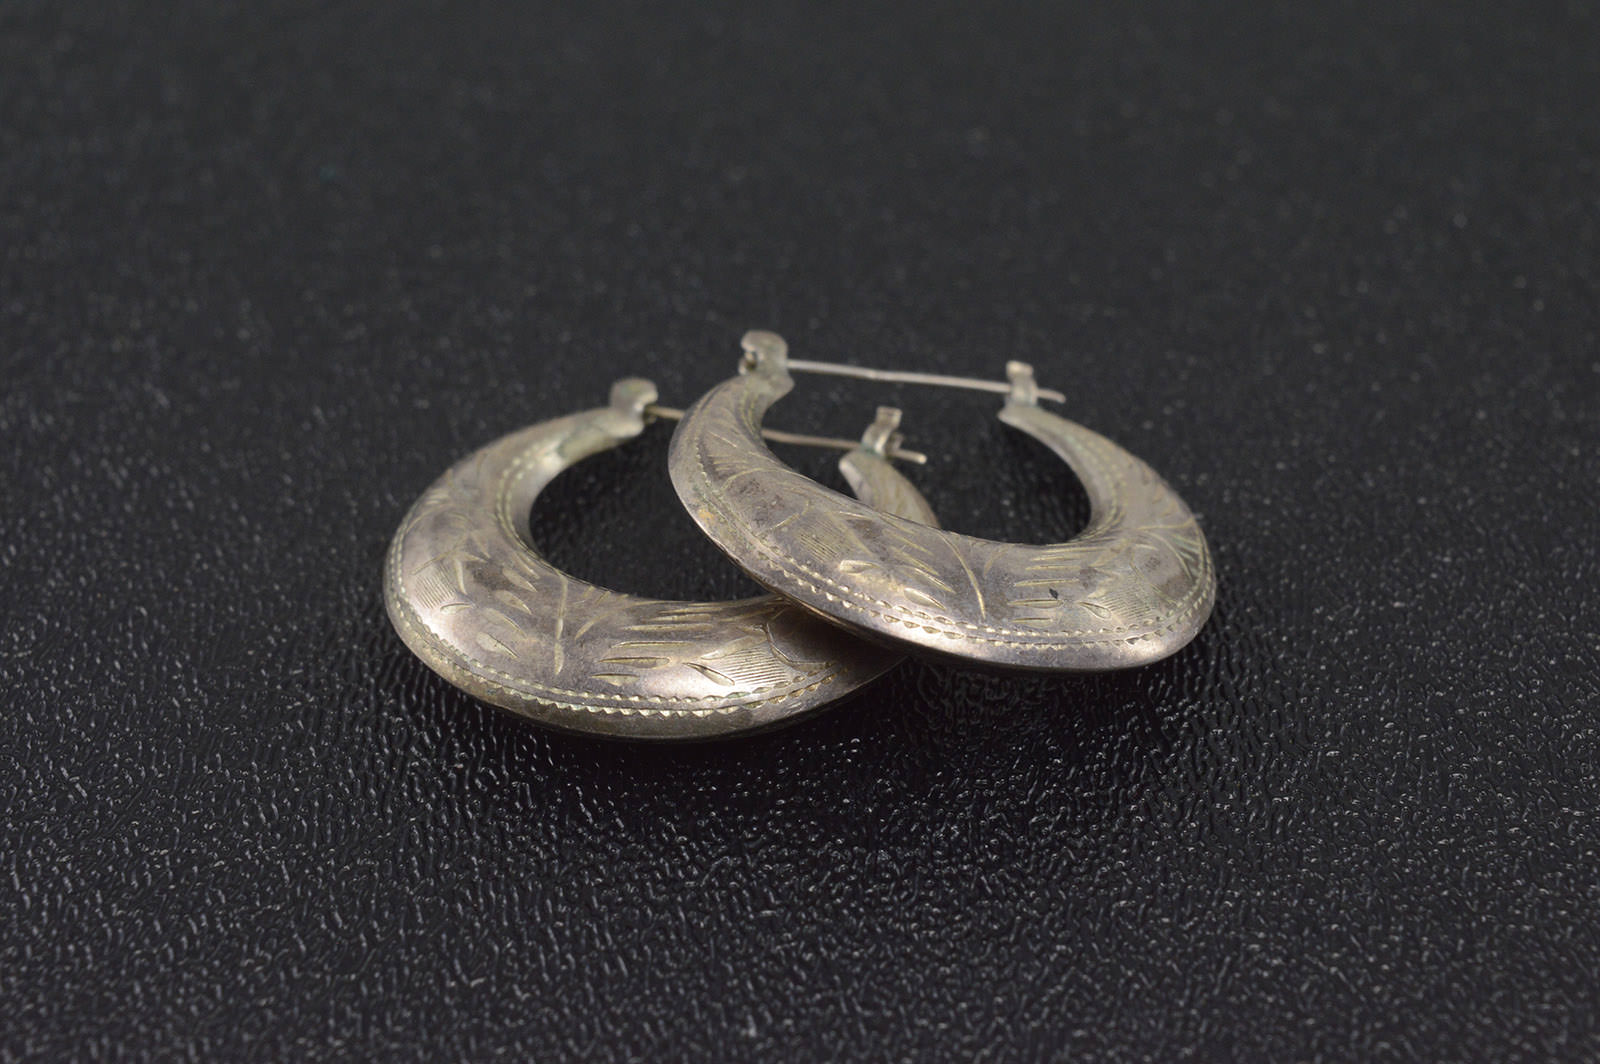 8g Solid Silver Sterling Earrings Marked 925